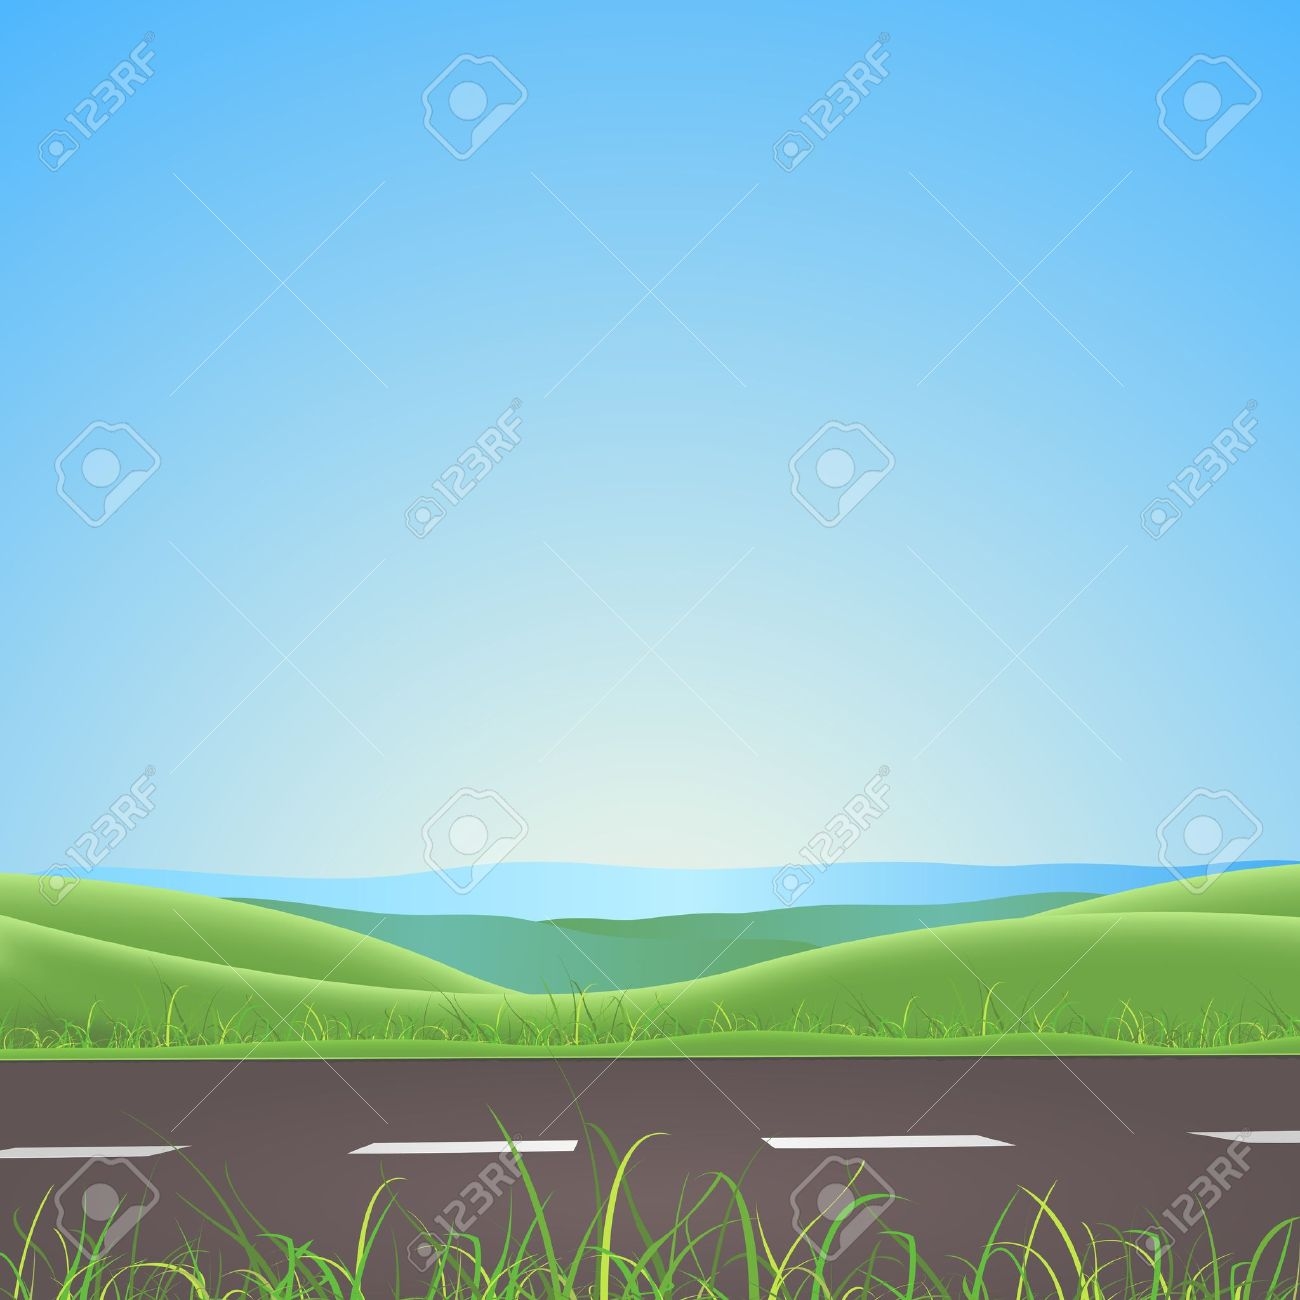 Illustration of a spring or summer season road on nature landscape with lawn and fields behind Stock Vector - 13043224